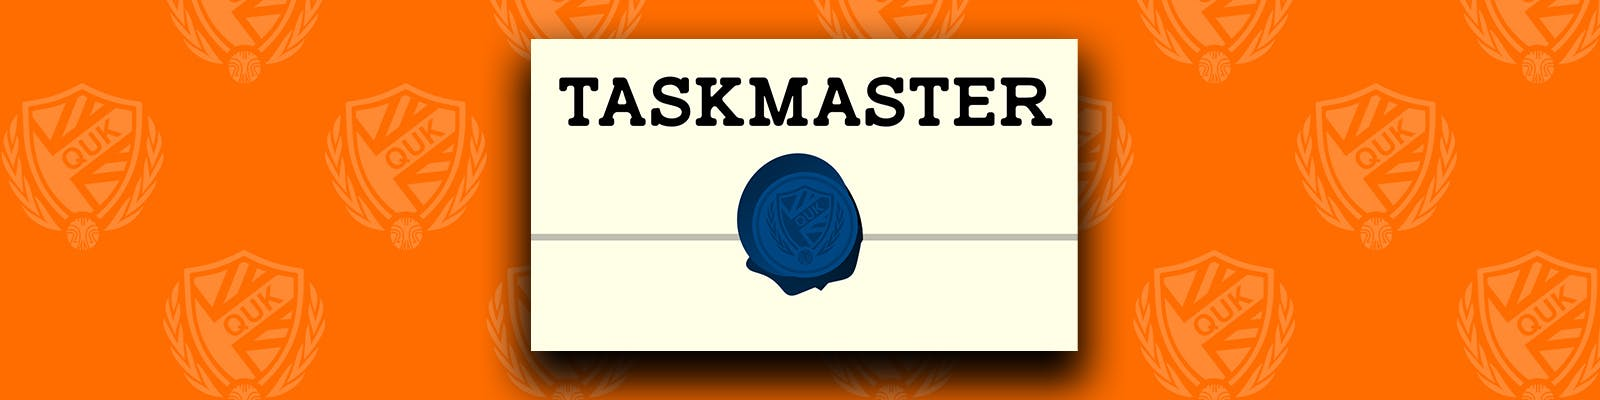 The Taskmaster (QUK) Logo on an orange background with QUK crests (Week 6 of QUK Taskmaster)